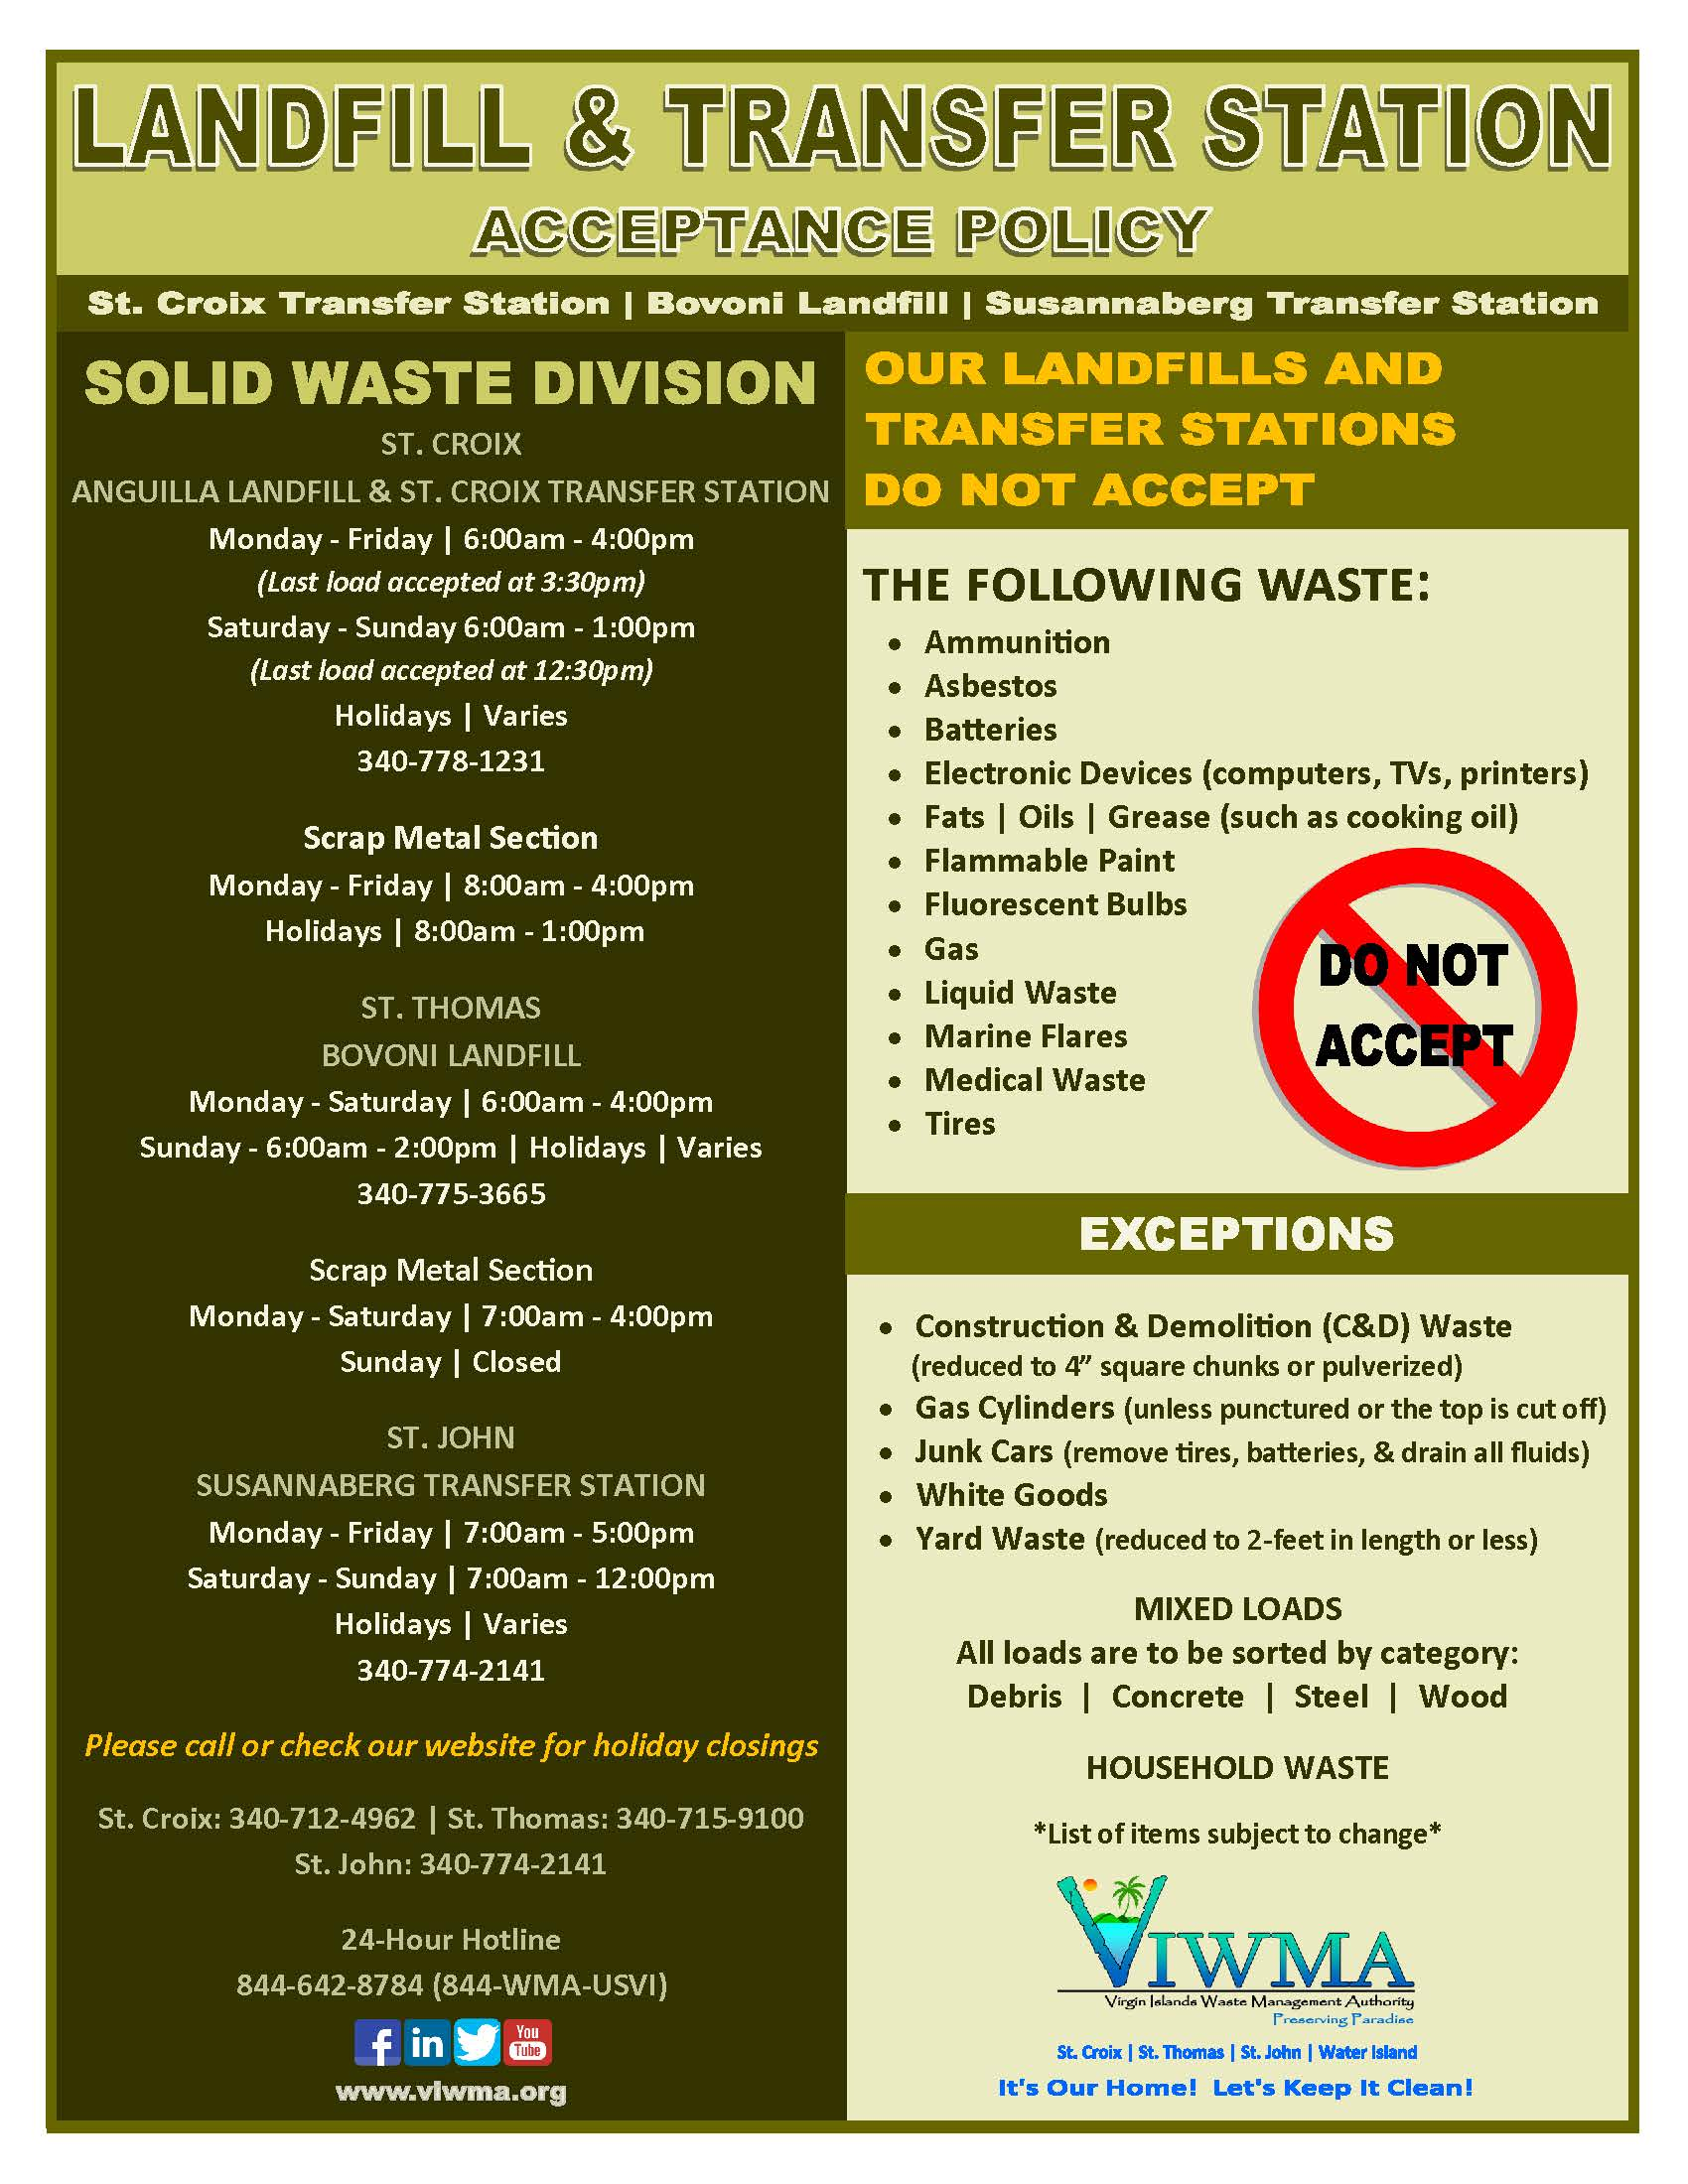 Landfill Transfer Station Bin Site Acceptance Policy Flyer Page 1